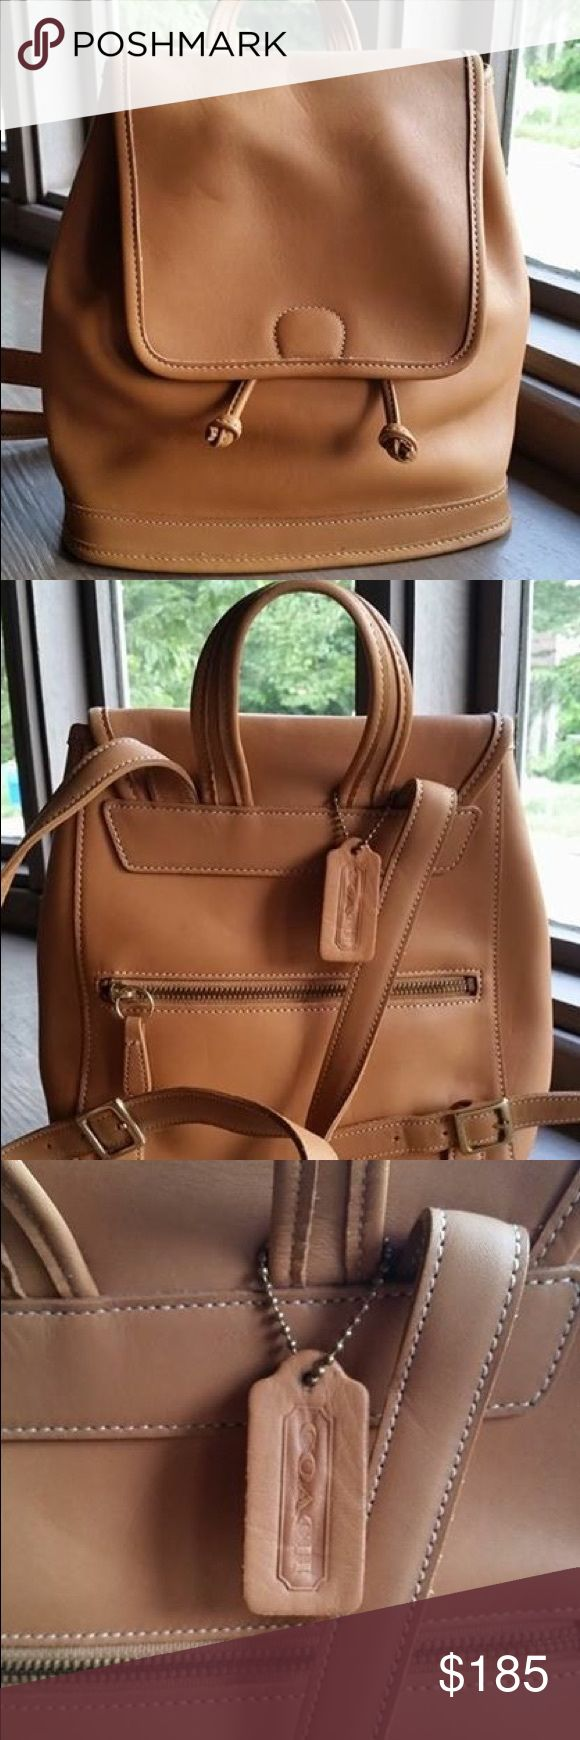 "Vintage COACH backpack purse Authentic, vintage COACH backpack. Brown/Tan. It was purchased from TJ MAXX awhile back- which is why there is an ""X"" marking on the inside- it is authentic. EXCELLENT condition- never used. Brand new. Coach Bags Backpacks"